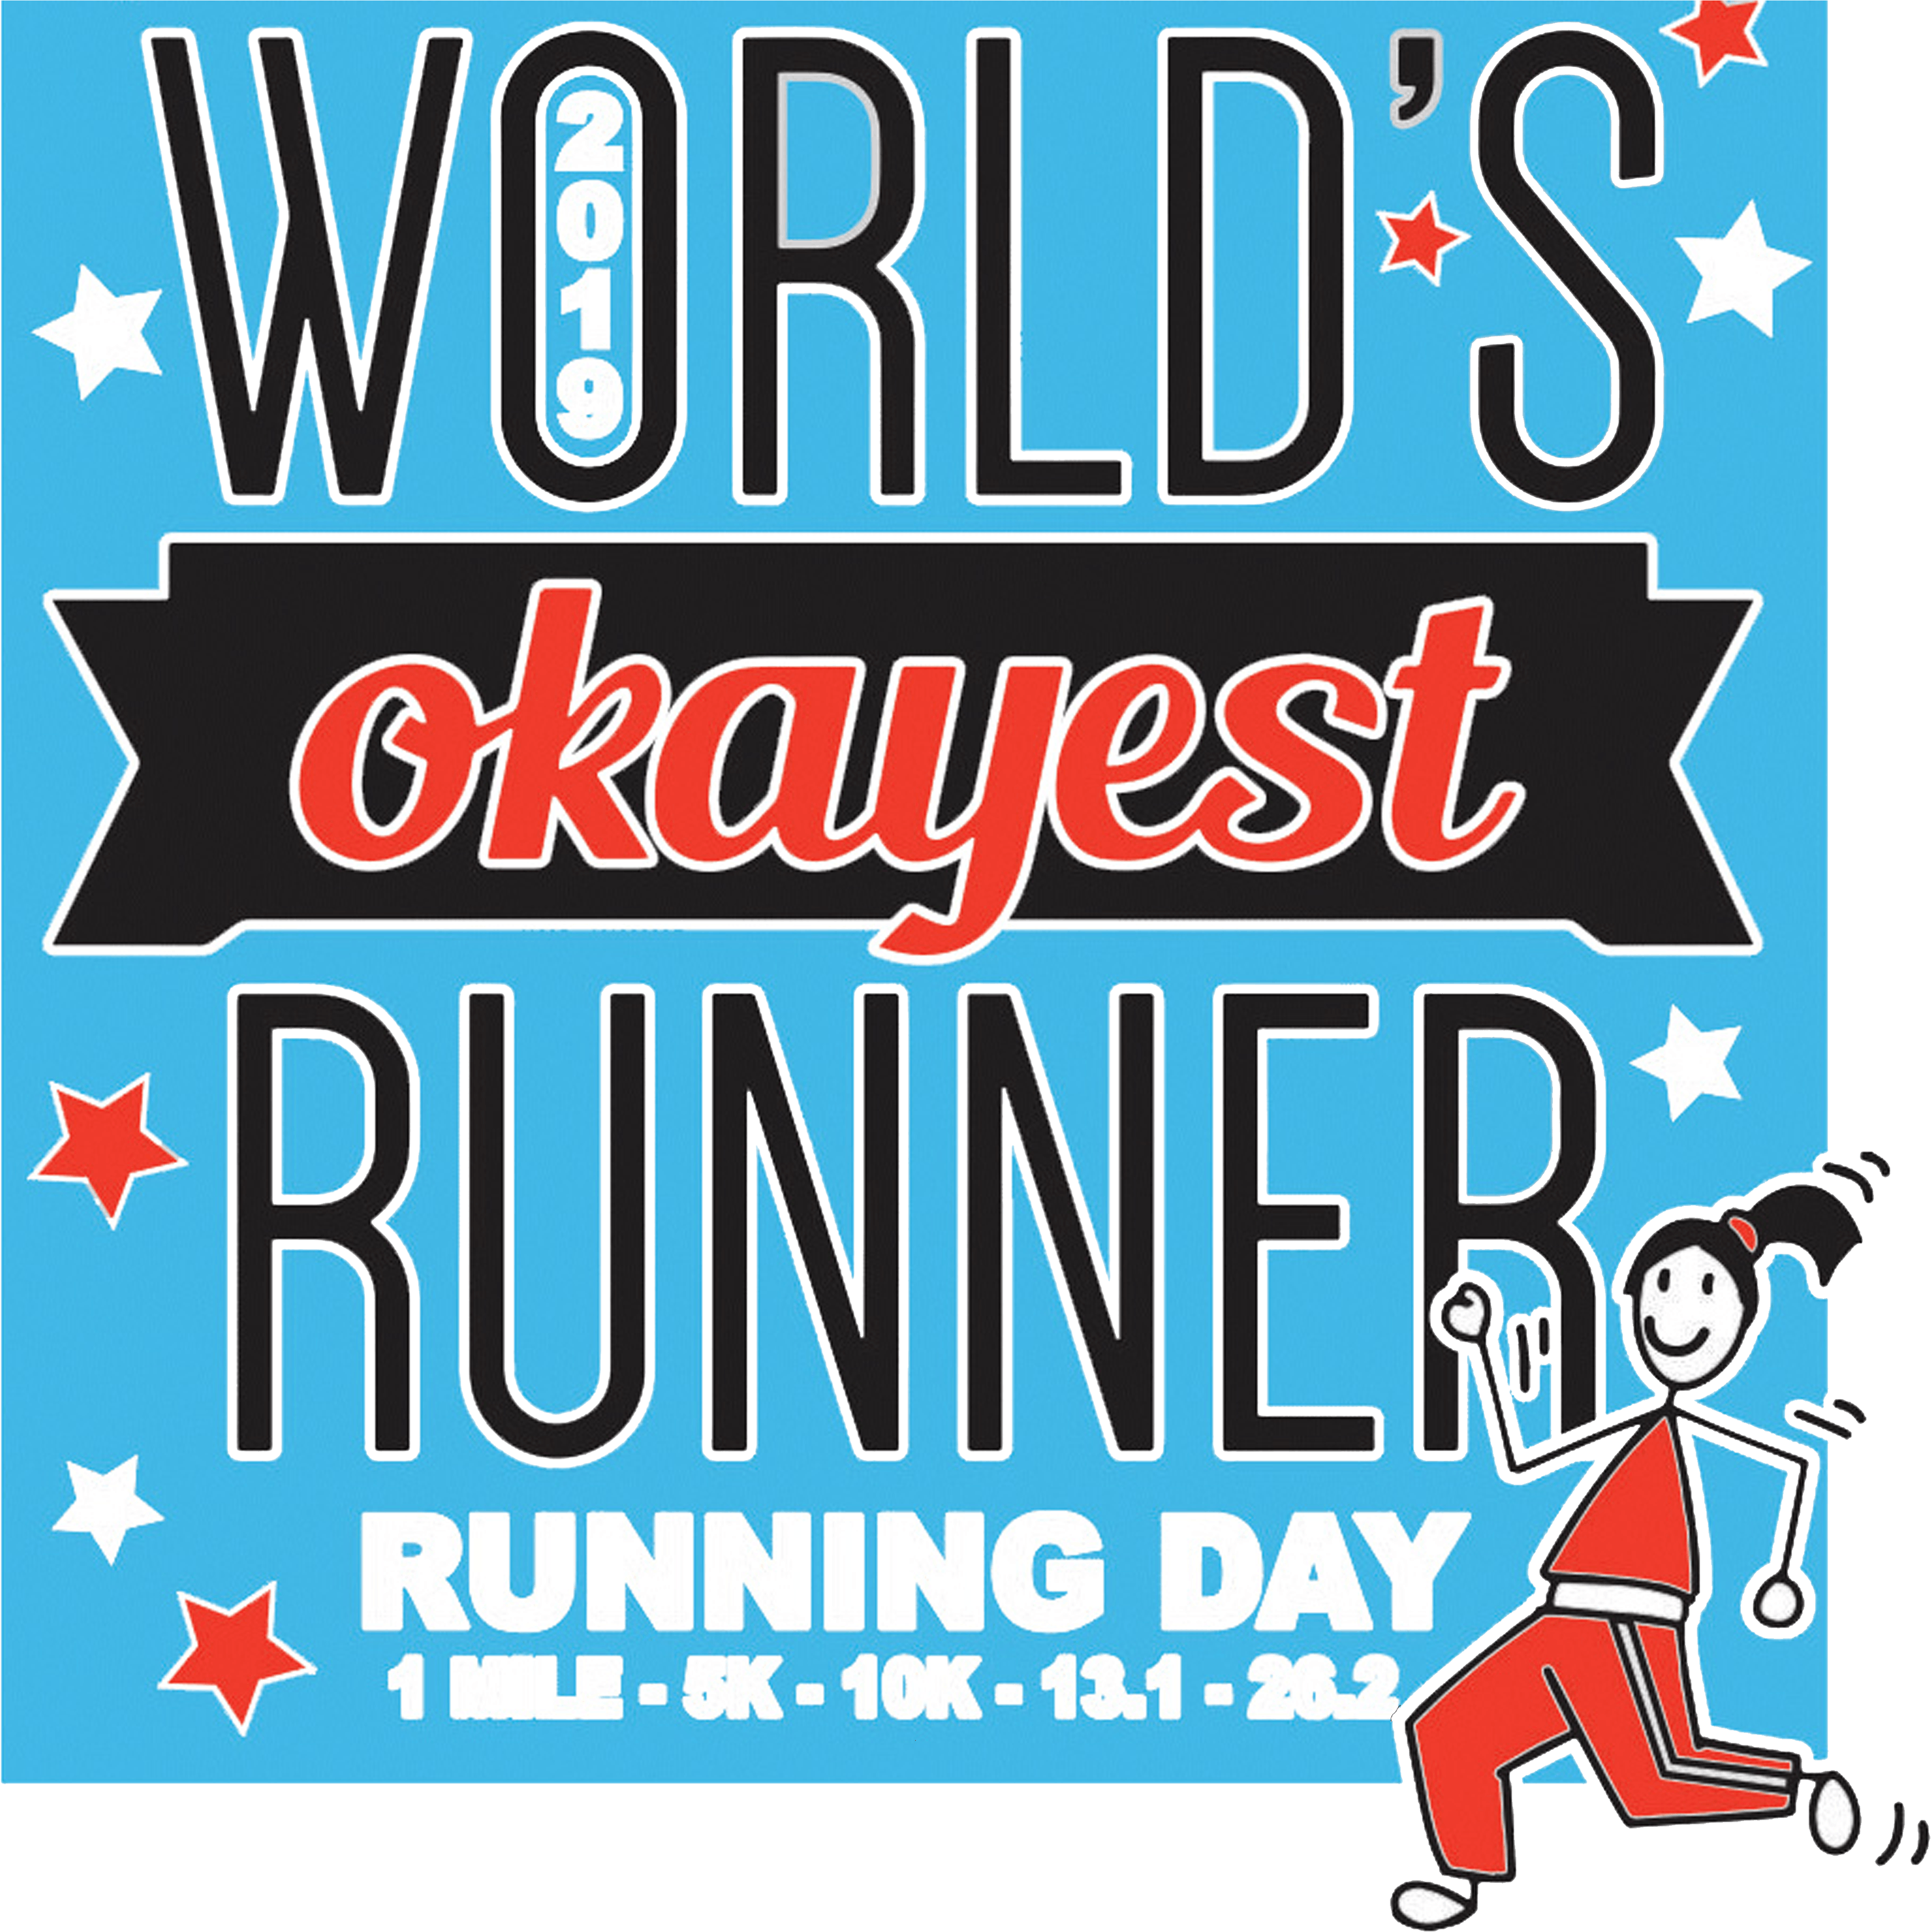 2019 Running Day 1 Mile, 5k, 10k, - Poster Clipart (4200x4800), Png Download